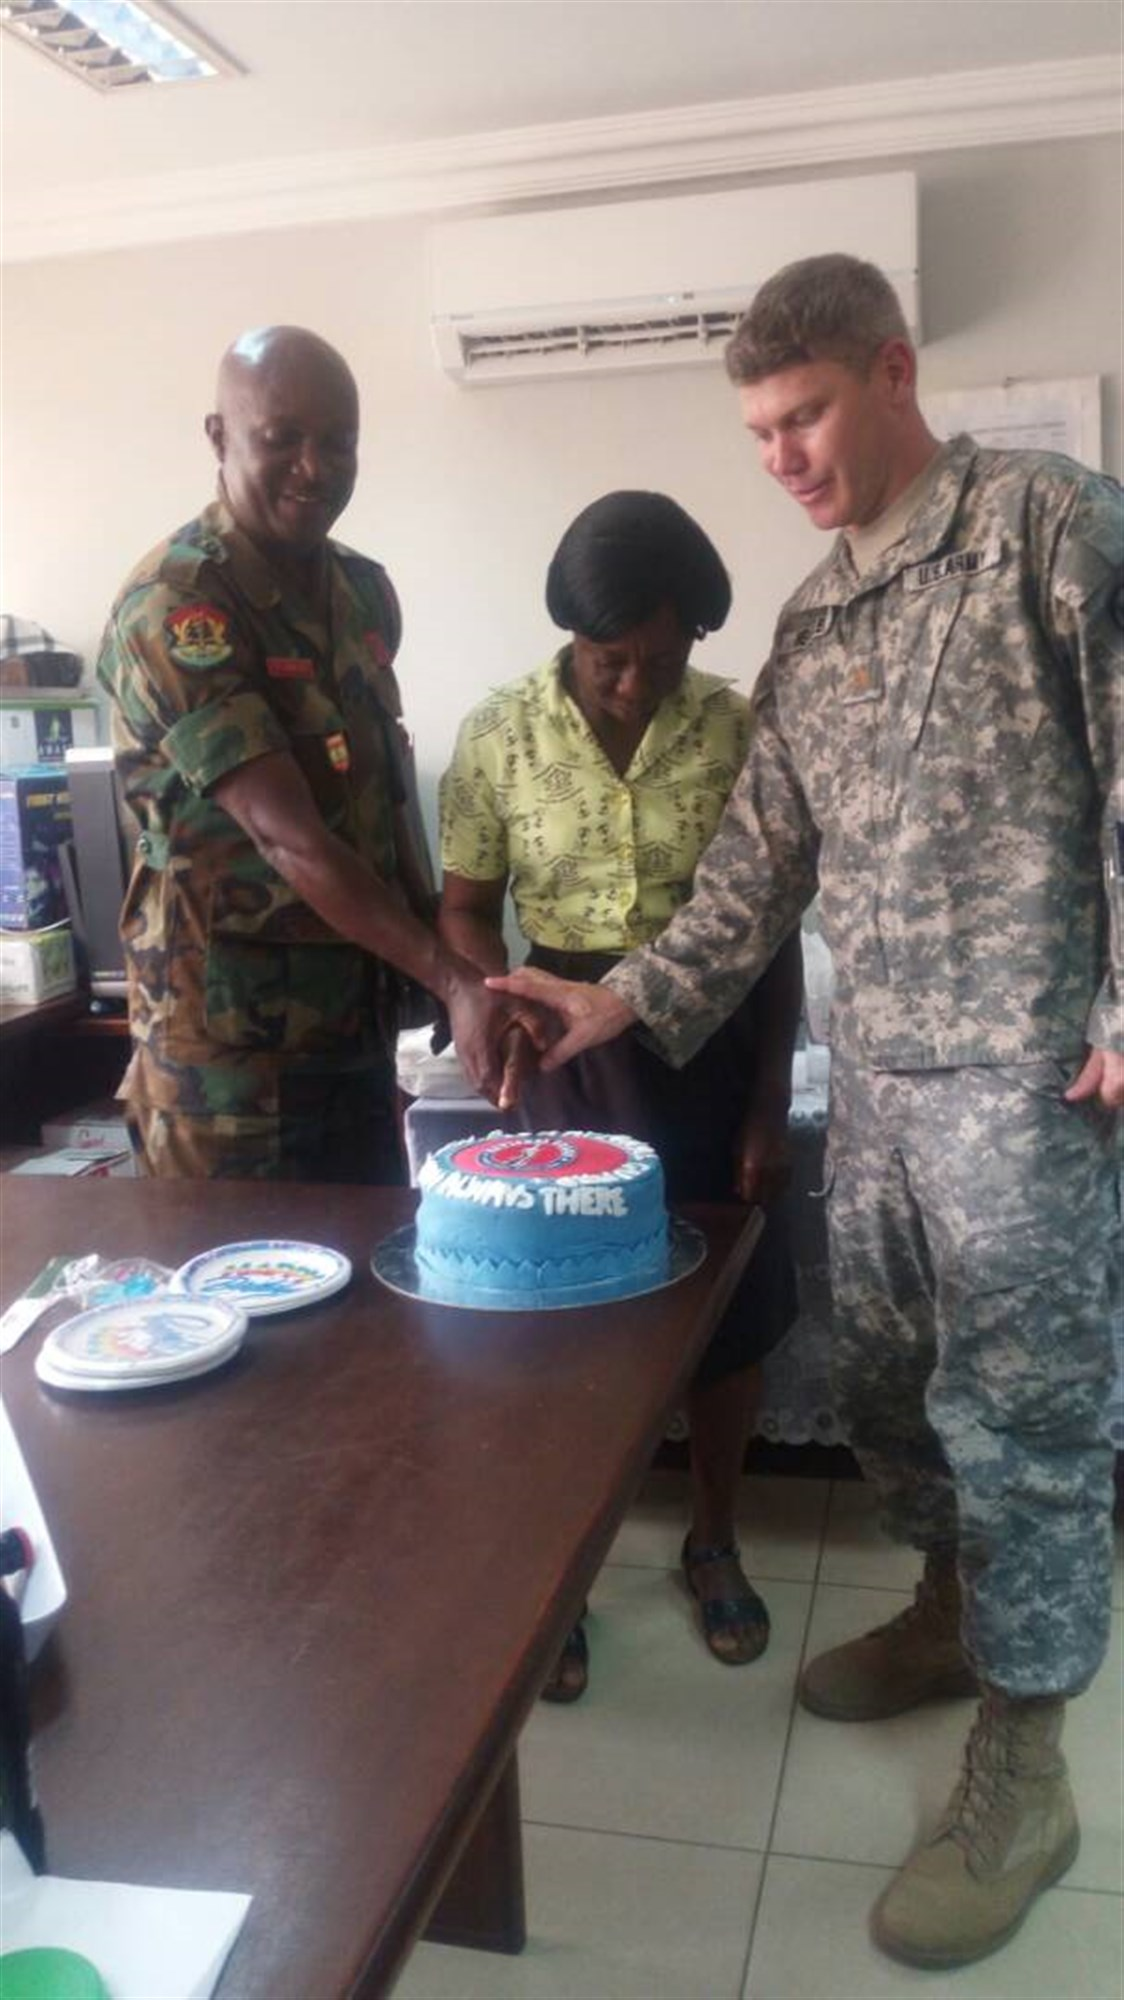 Maj. Matt Headley of North Dakota National Guard and Ghana/Togo/Benin Bilateral Affairs Officer and the Ghana Forces Sergeant Major Chief Warrant Officer Ramous Kwame Barker cut cake to celebrate the National Guard Birthday.